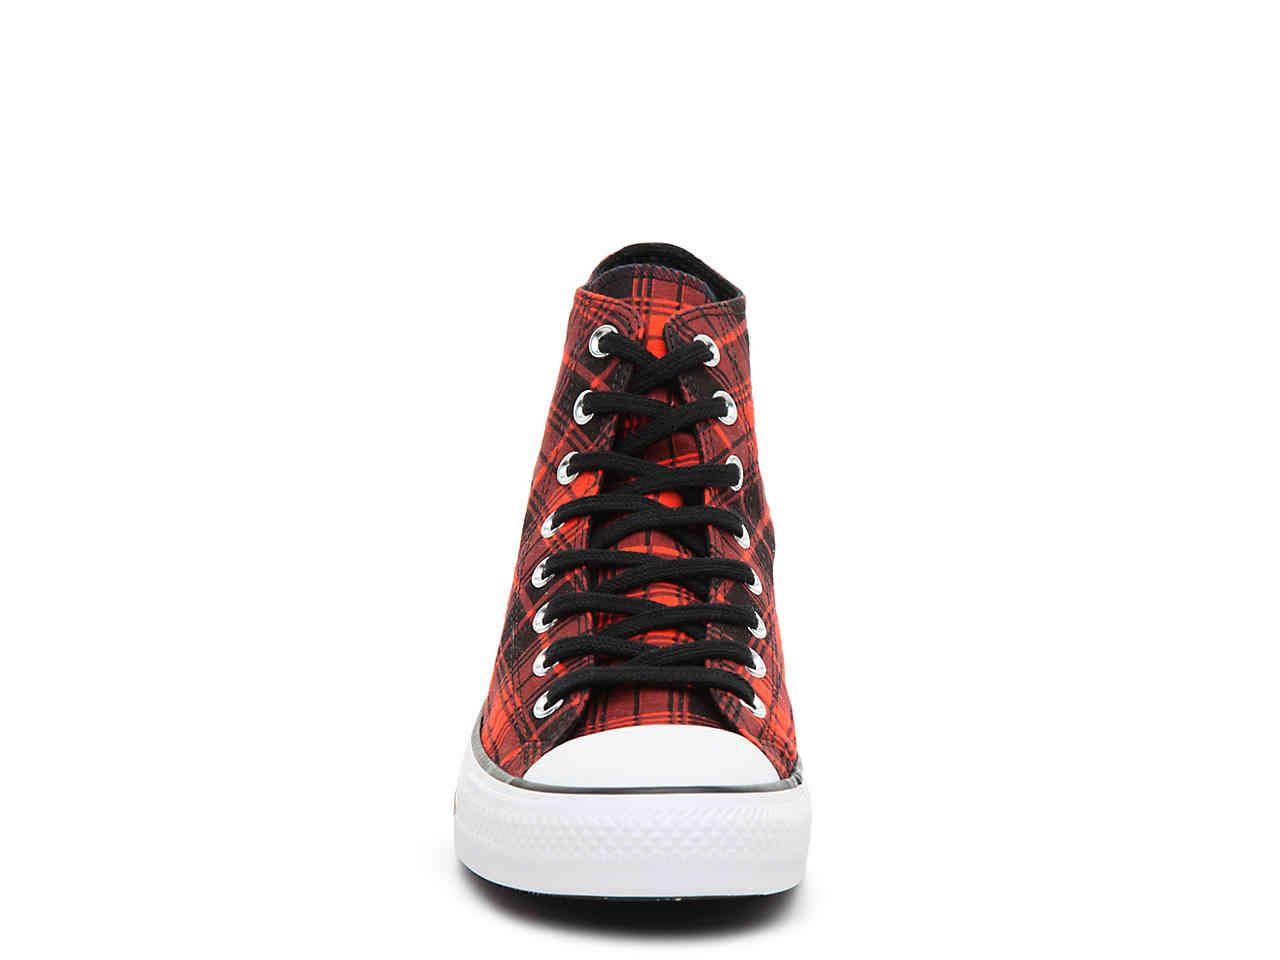 38801be0a0ca Converse - Red Chuck Taylor All Star Hi High-top Sneaker for Men - Lyst.  View fullscreen